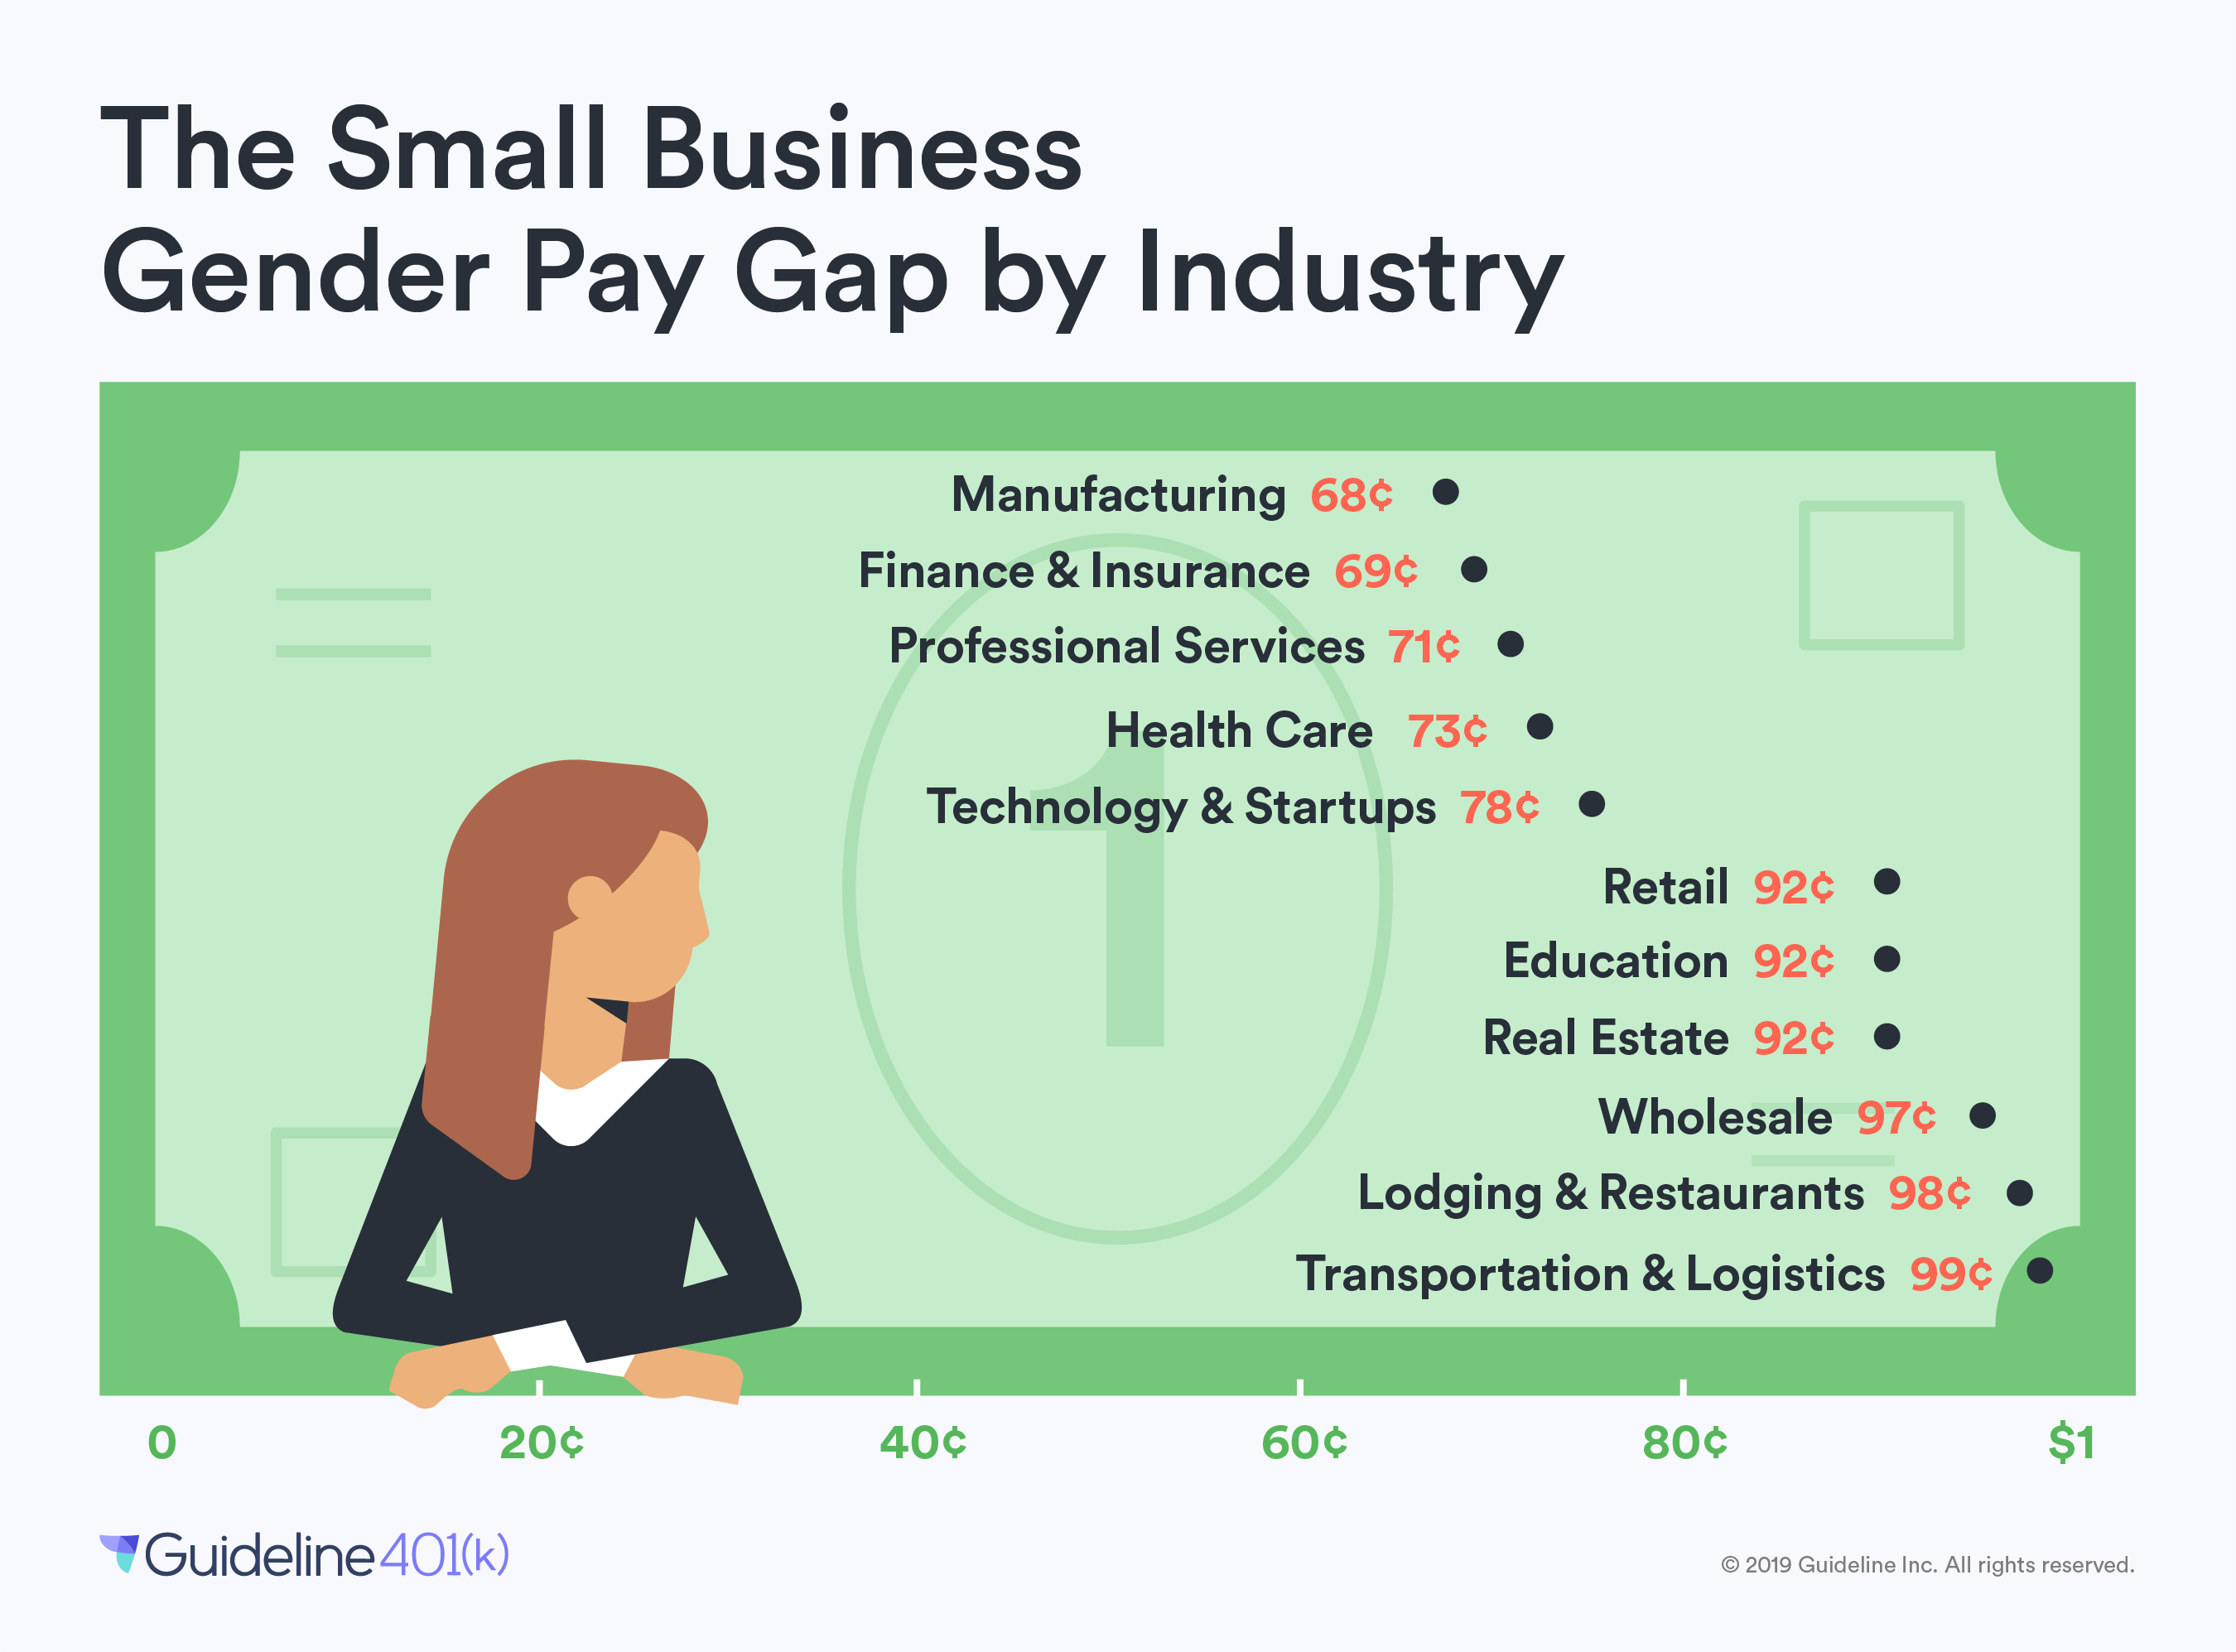 Small business gender pay gap by industry